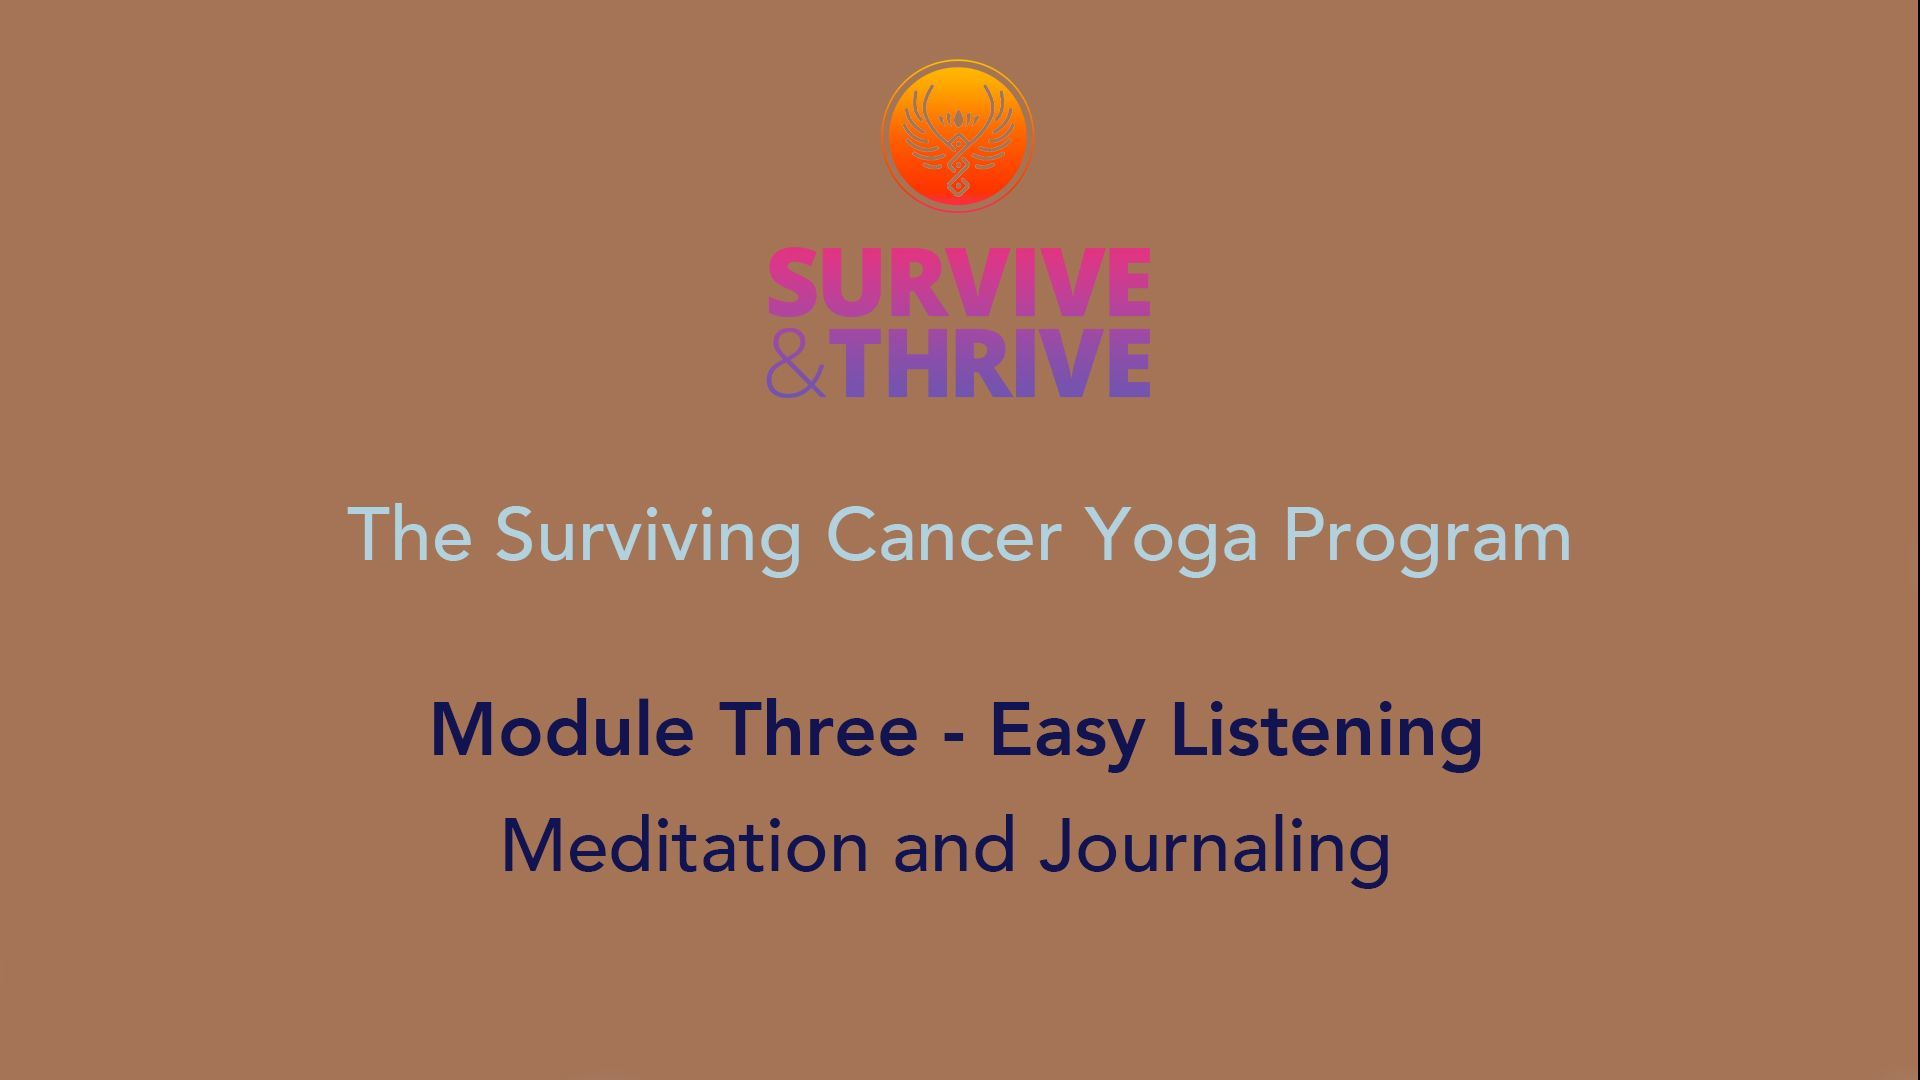 SURVIVE AND THRIVE | MODULE 3 - EASY LISTENING | MEDITATION